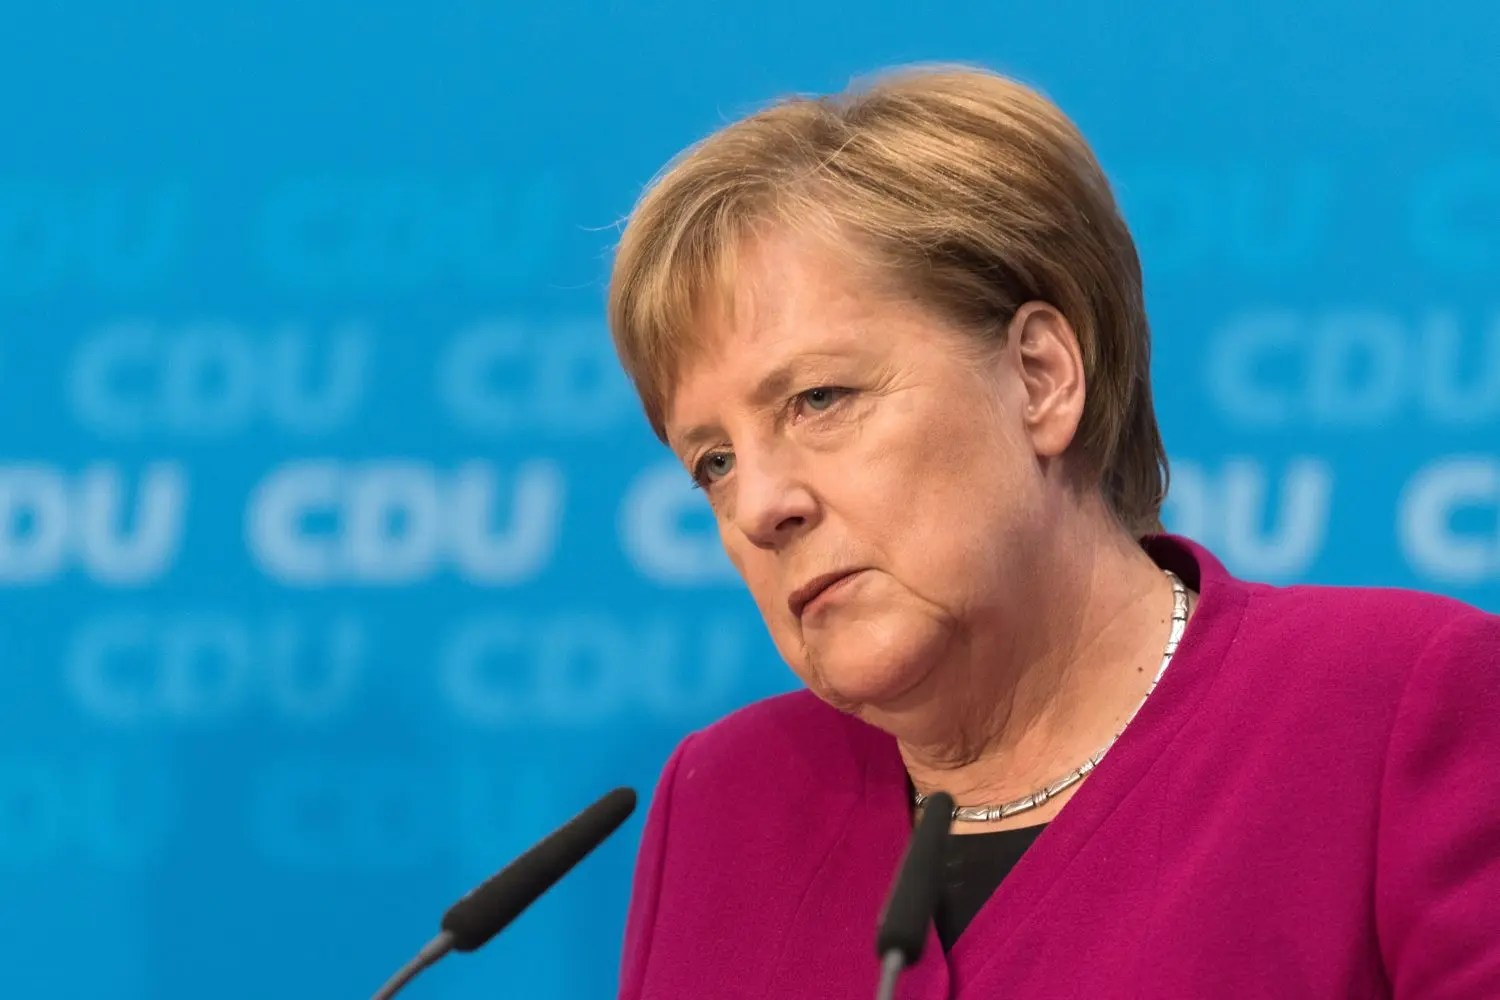 Angela Merkel must give health update after shaking, third of Germans say